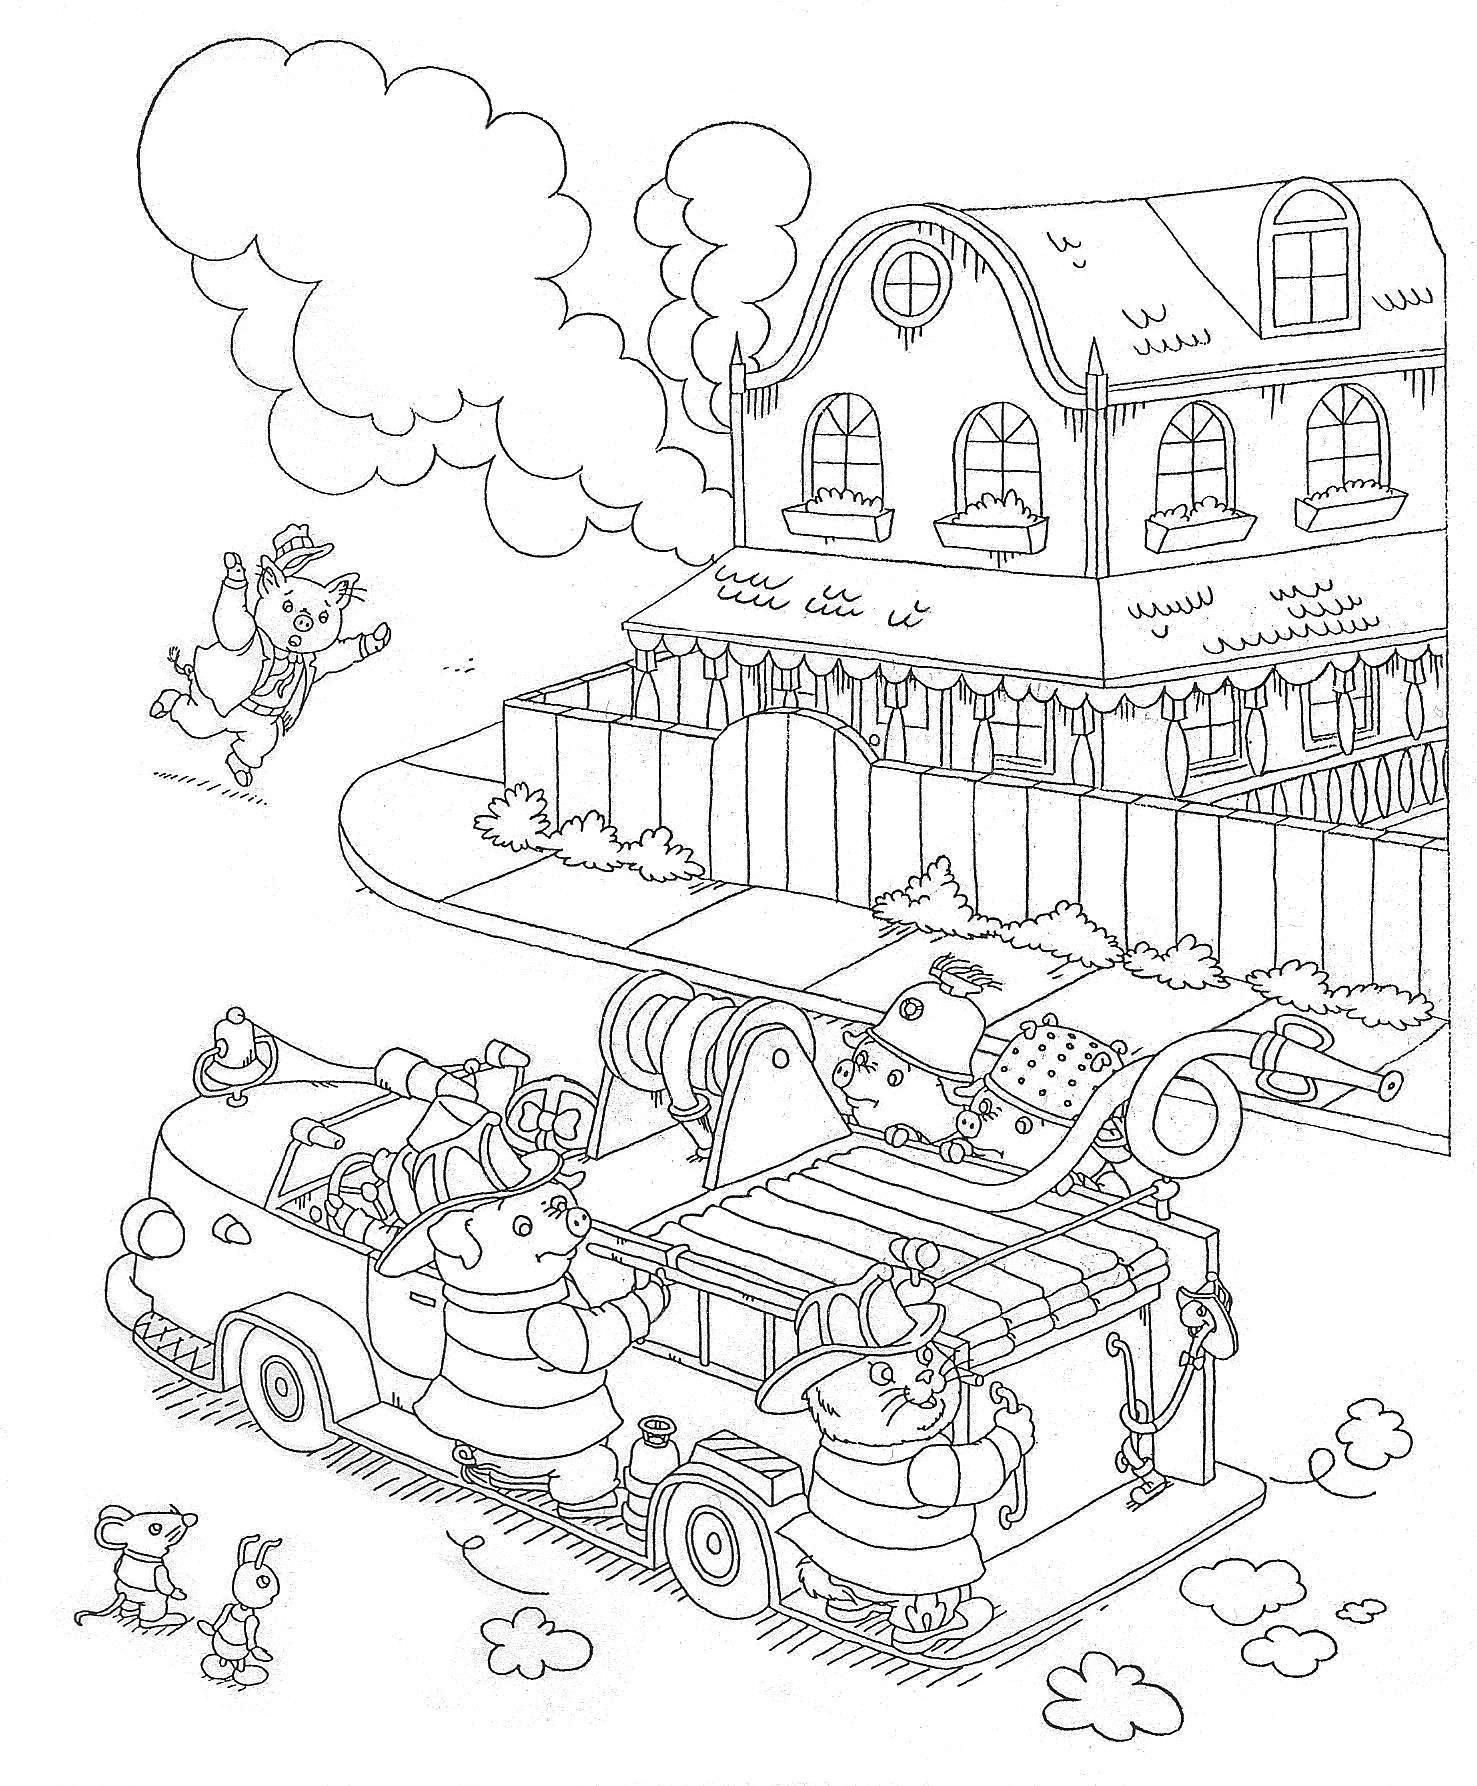 richard scarry halloween coloring pages - photo#6